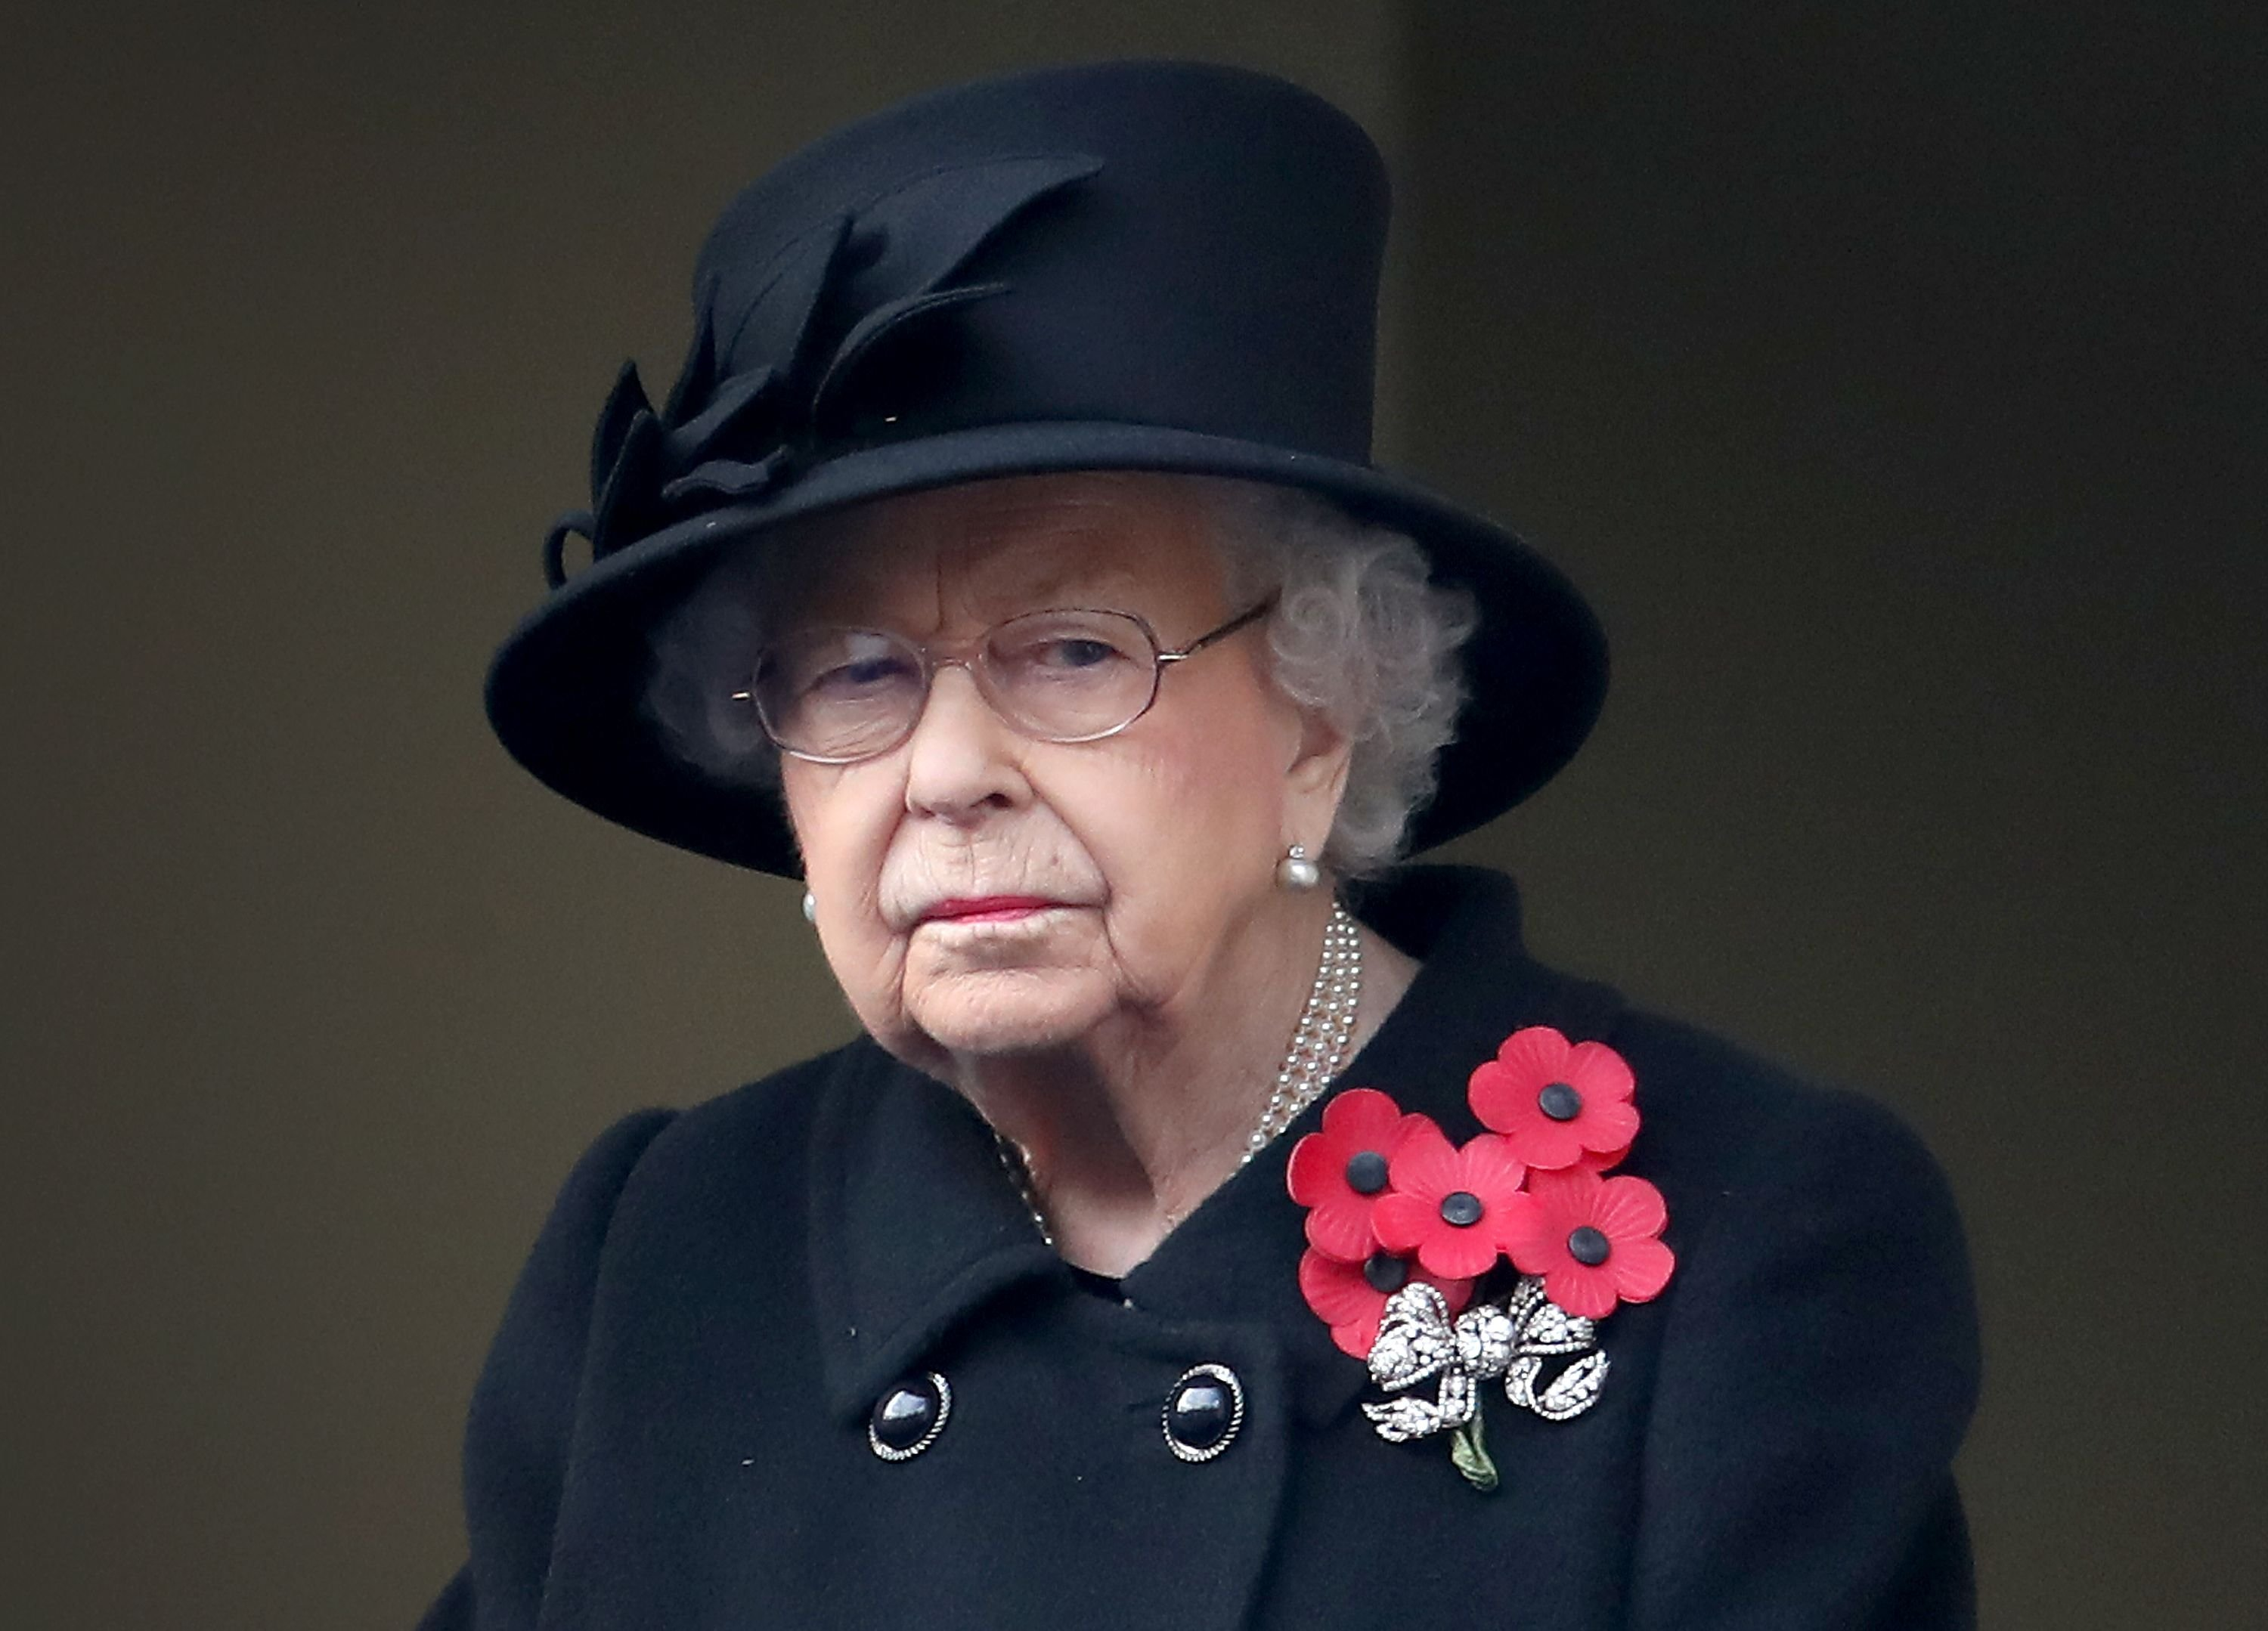 Queen Elizabeth II at the Service of Remembrance at the Cenotaph at The Cenotaph on November 08, 2020  Photo: Getty Images